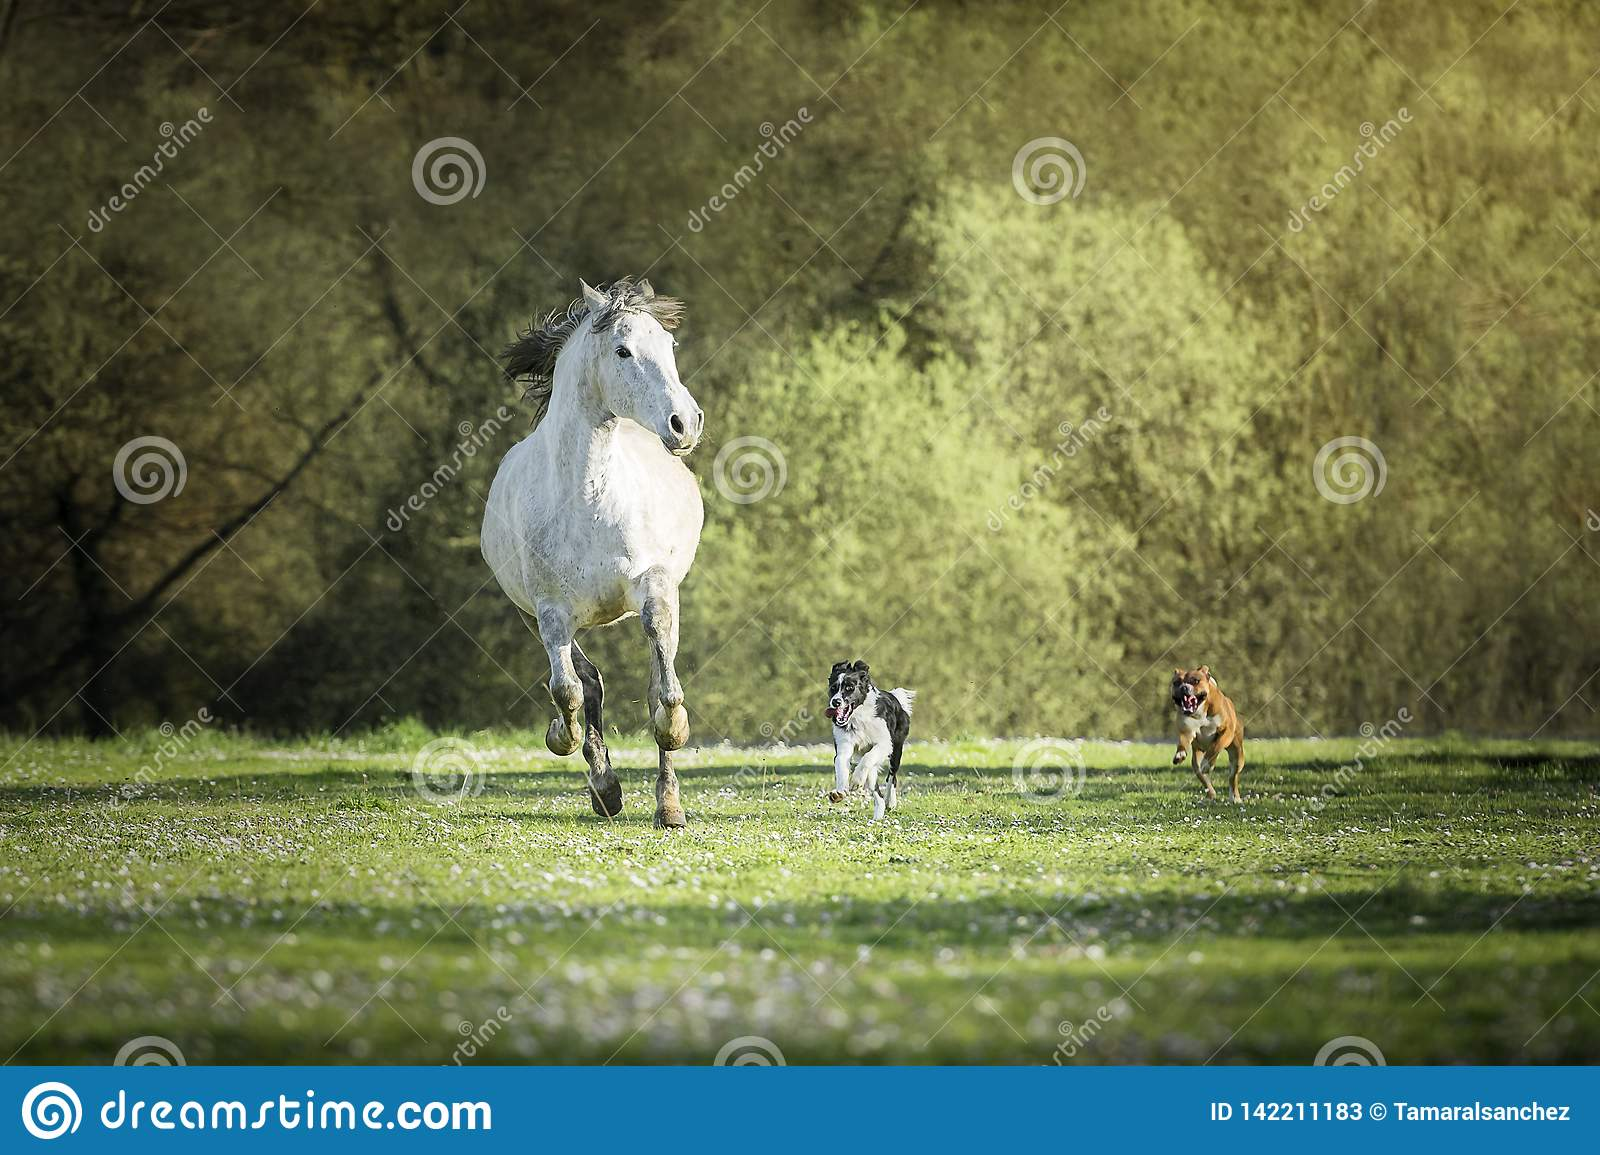 Spanish horse, Border Collie and Boxer dogs playing together in a meadow